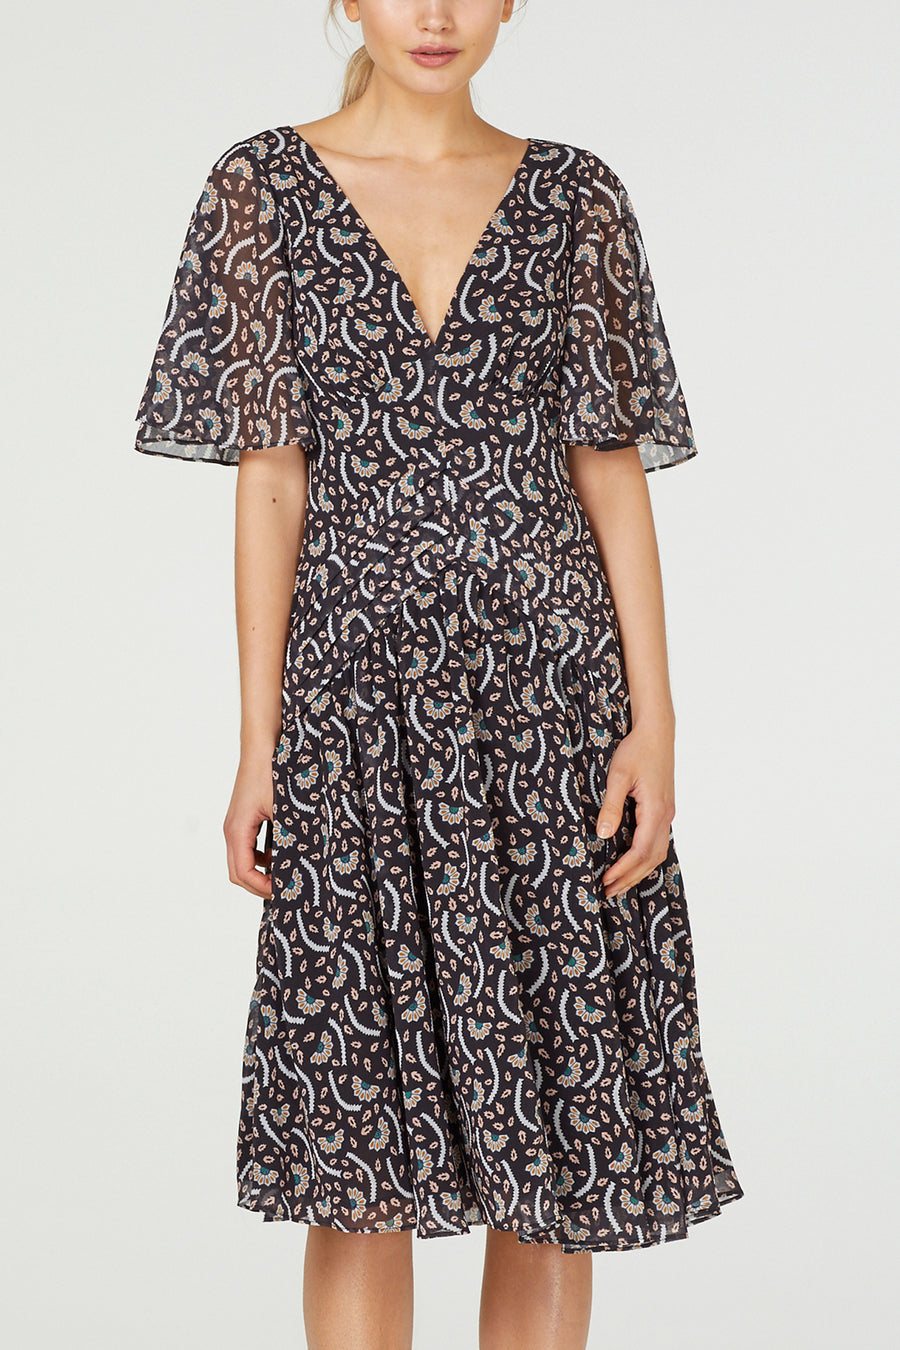 STEVIE MAY - Anise Midi Dress - Style on Point